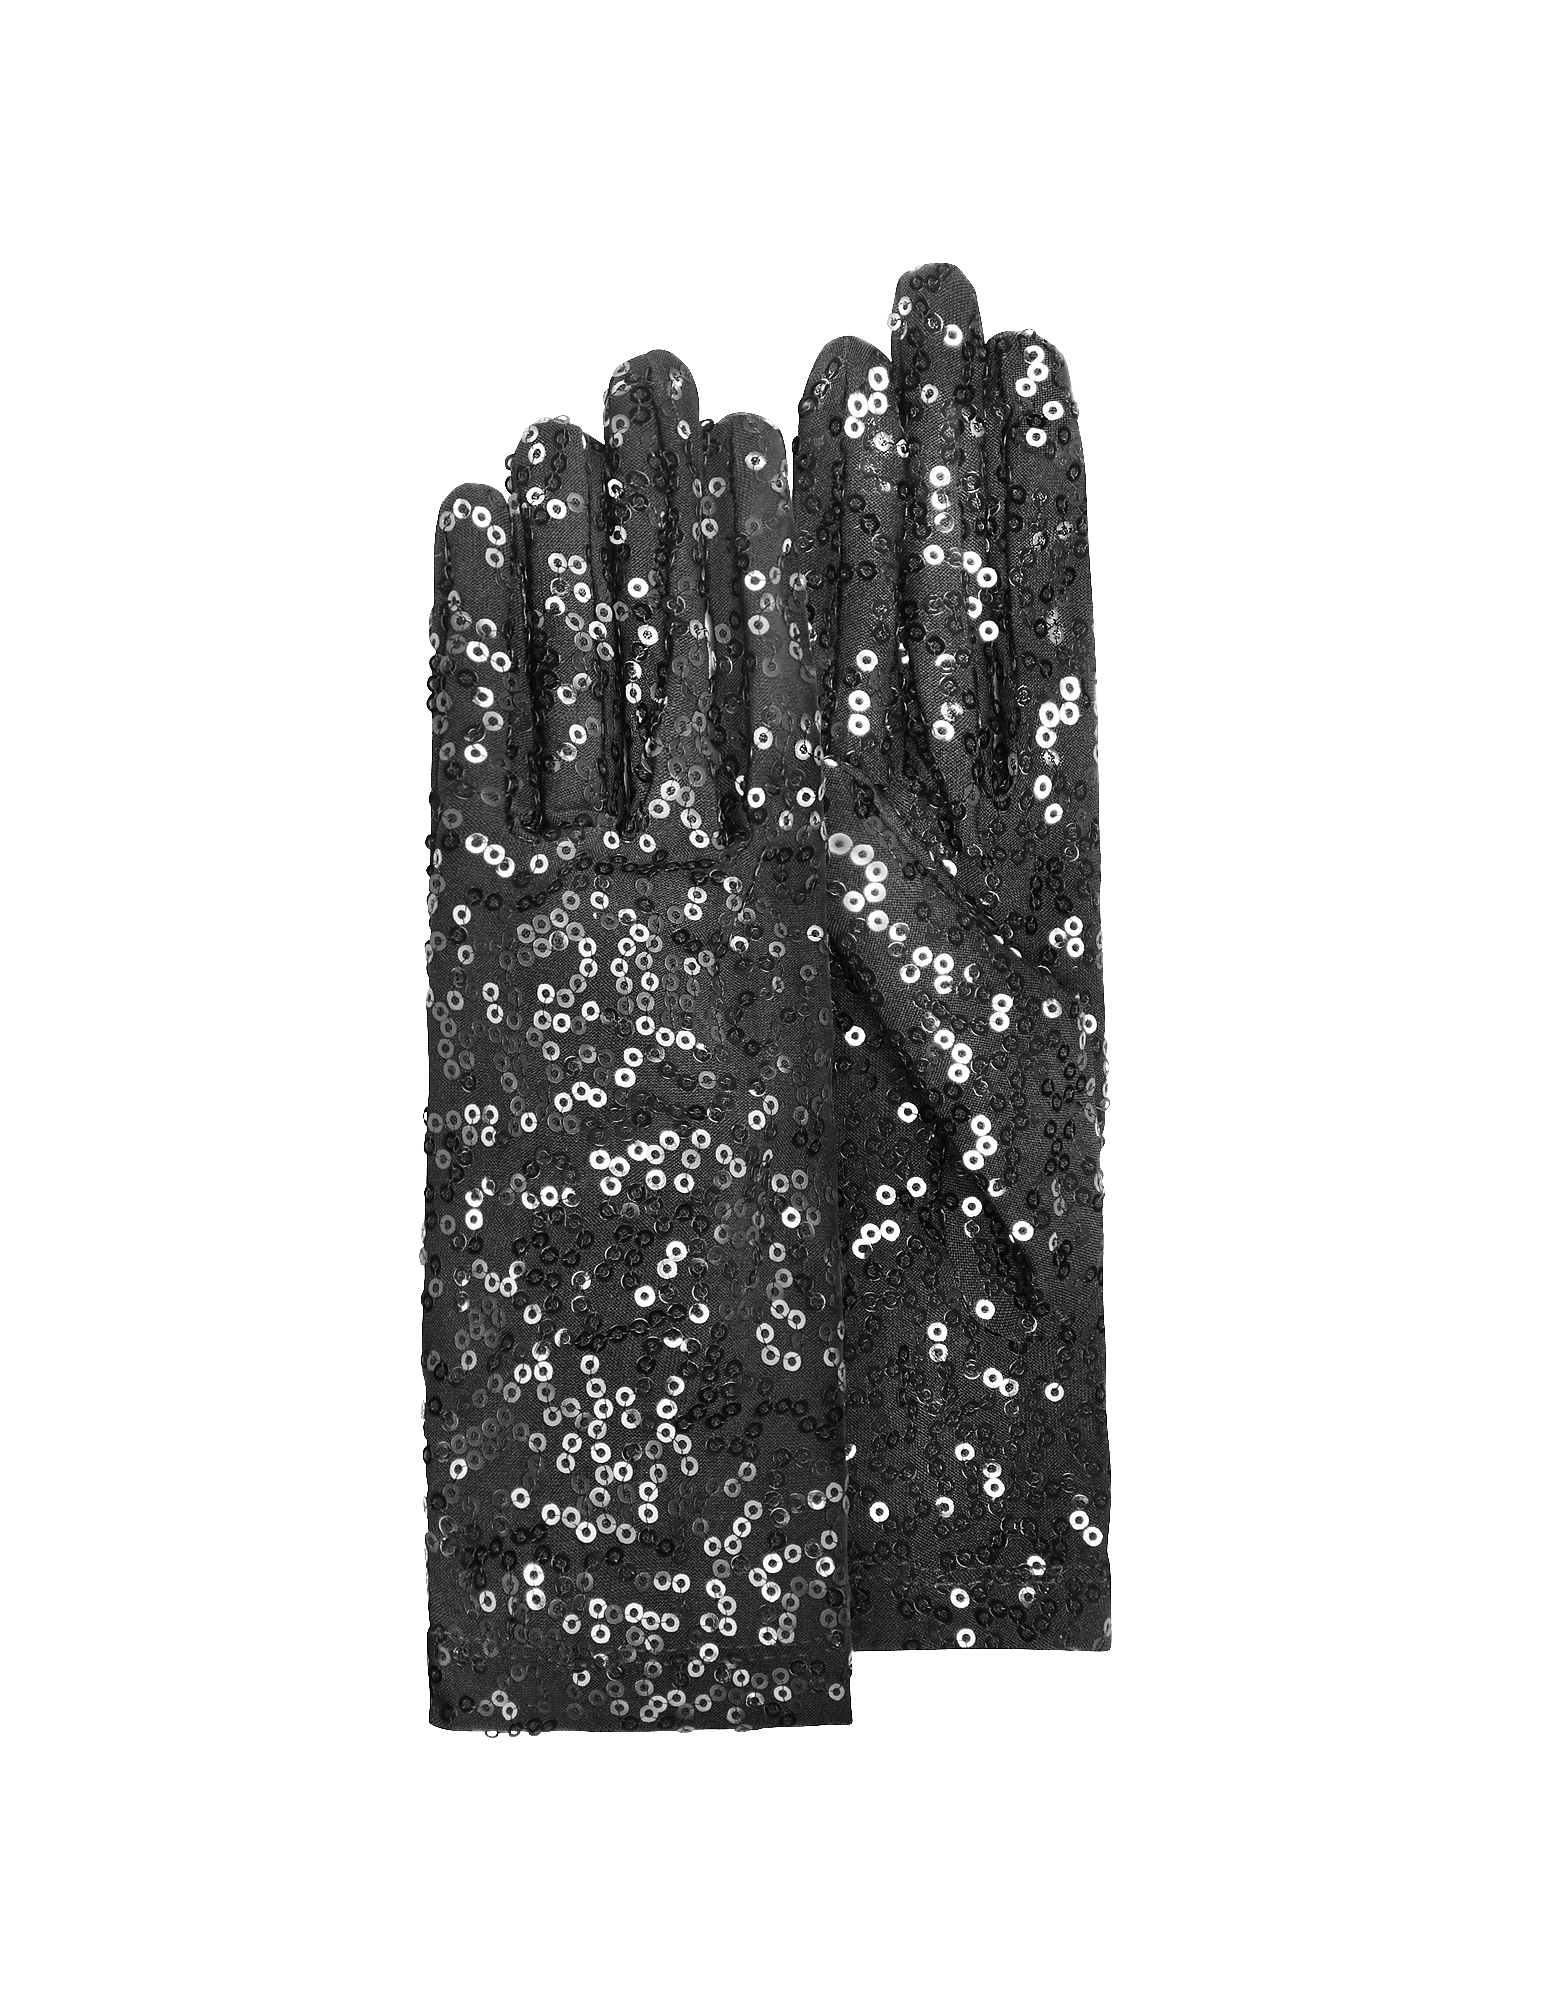 Forzieri Designer Women's Gloves, Women's Black Sequin Gloves